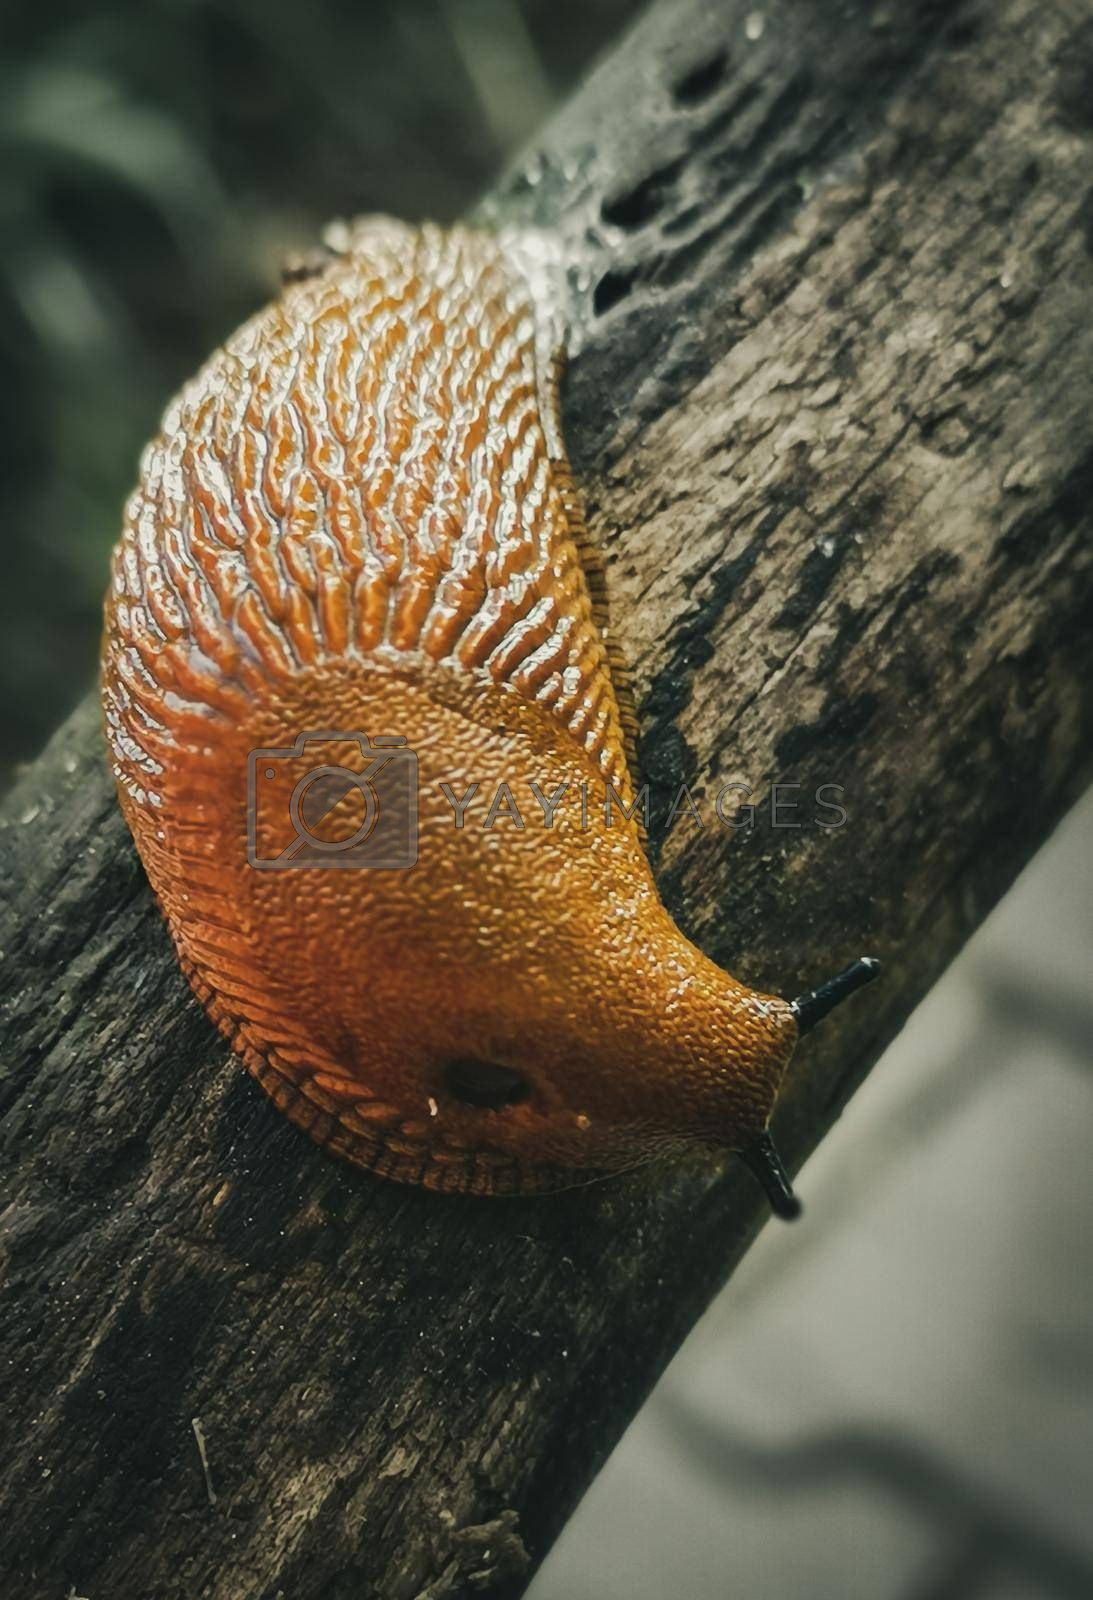 Closeup shot of a snail without a shell on a tree trunk